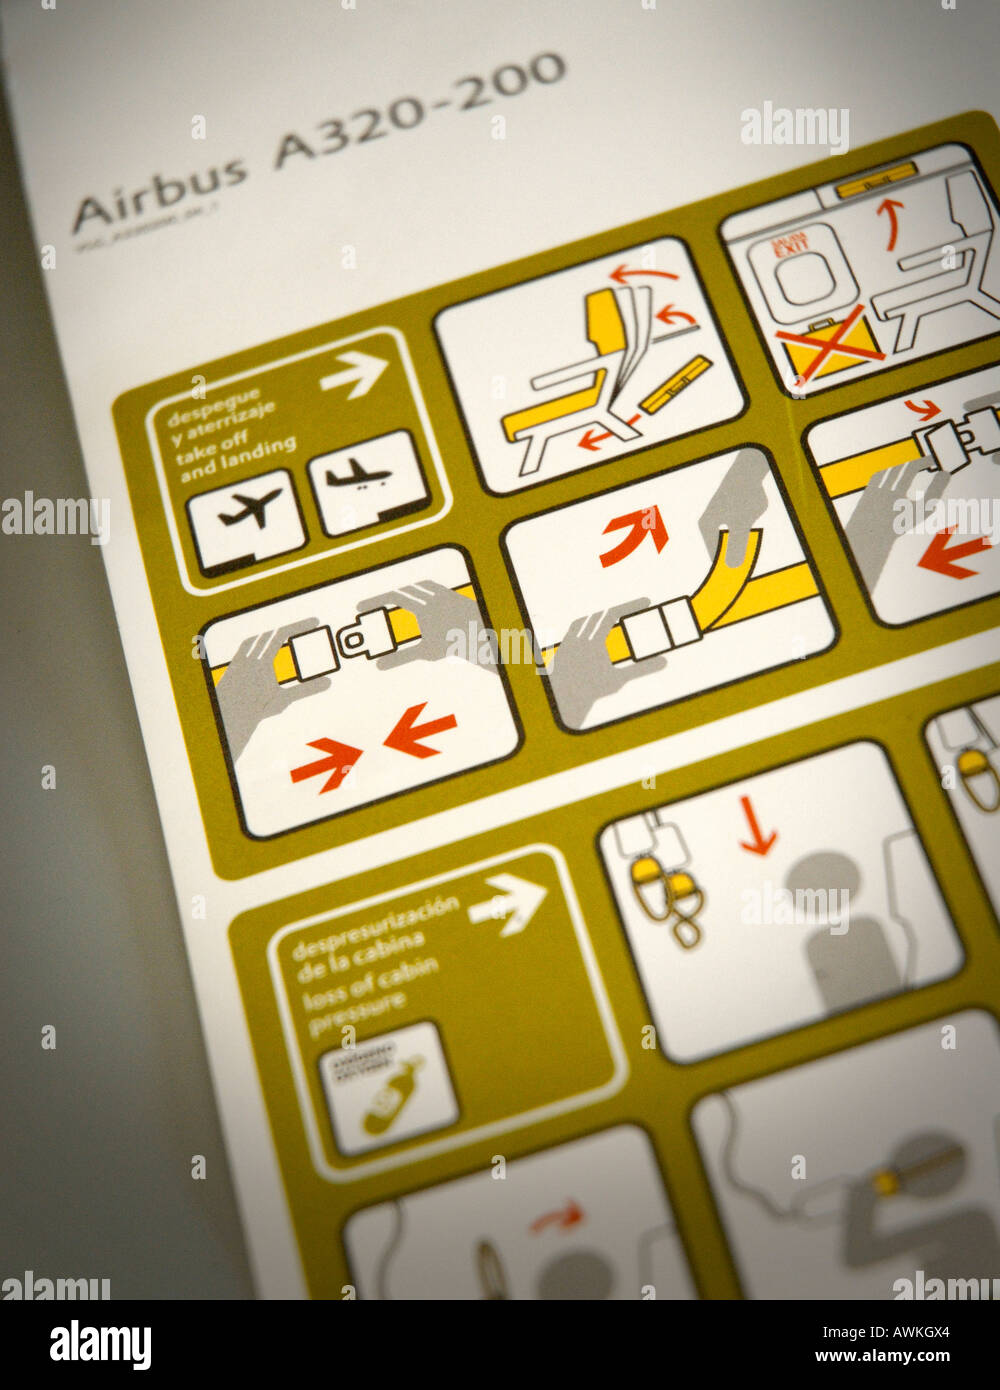 AIRBUS A320-200 SAFETY INDICATIONS RULES ICONOGRAPHY SYMBOL - Stock Image